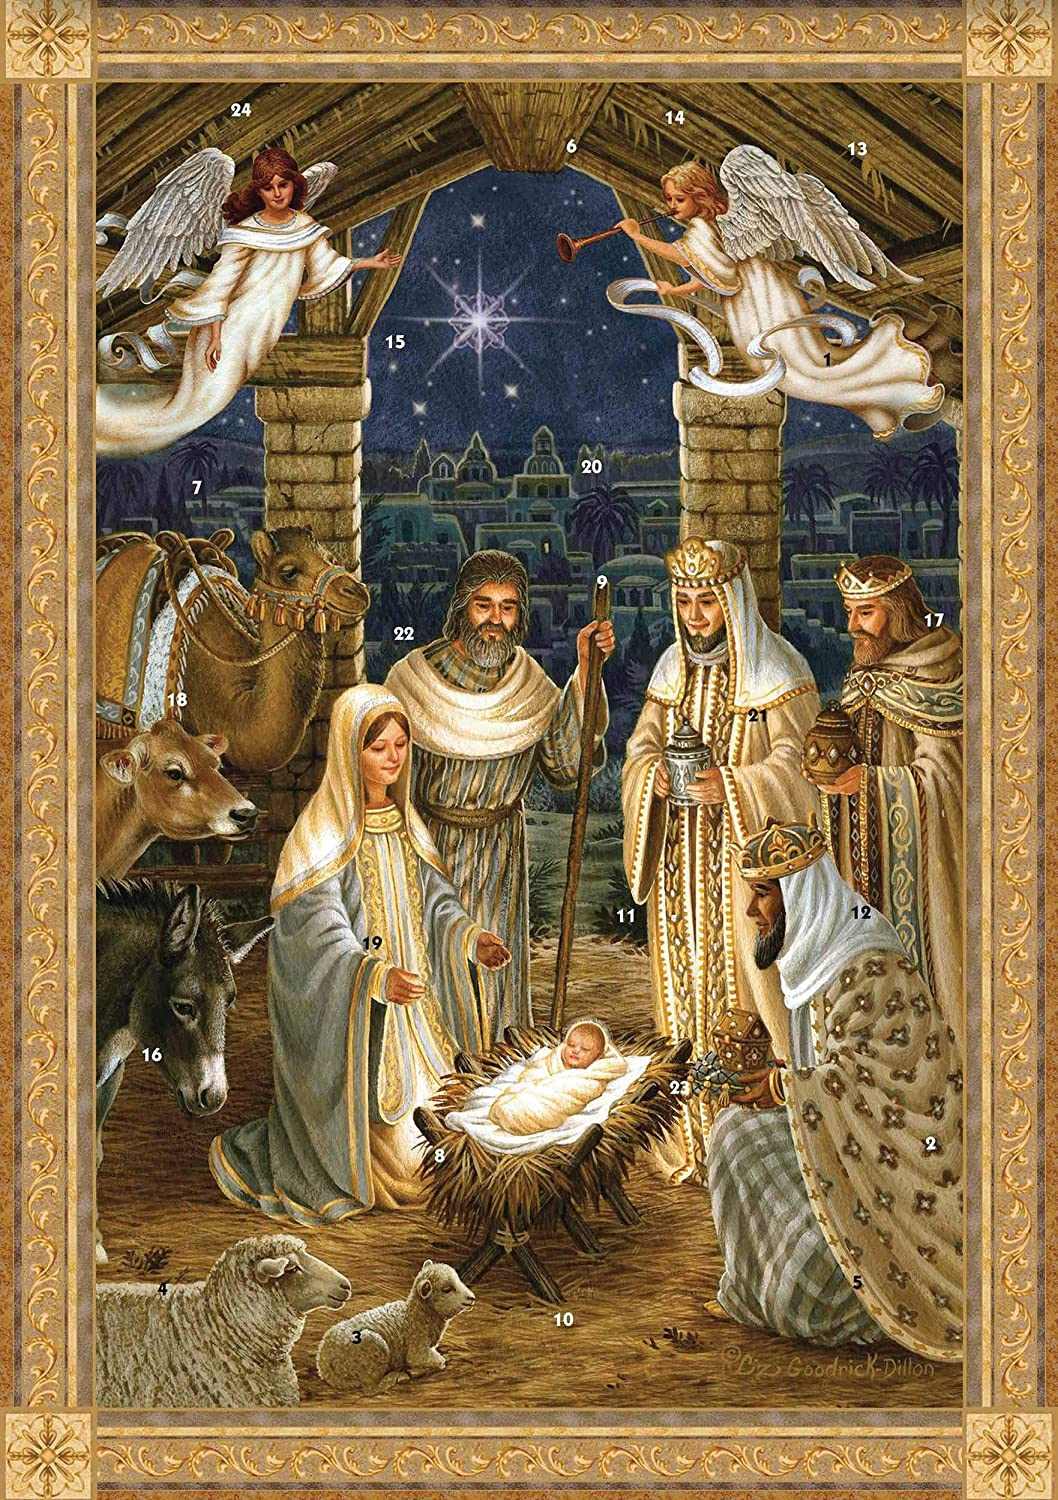 Advent Calendar (WDM9998) - Jesus is Born - With Bible Text & Pictures Woodmansterne